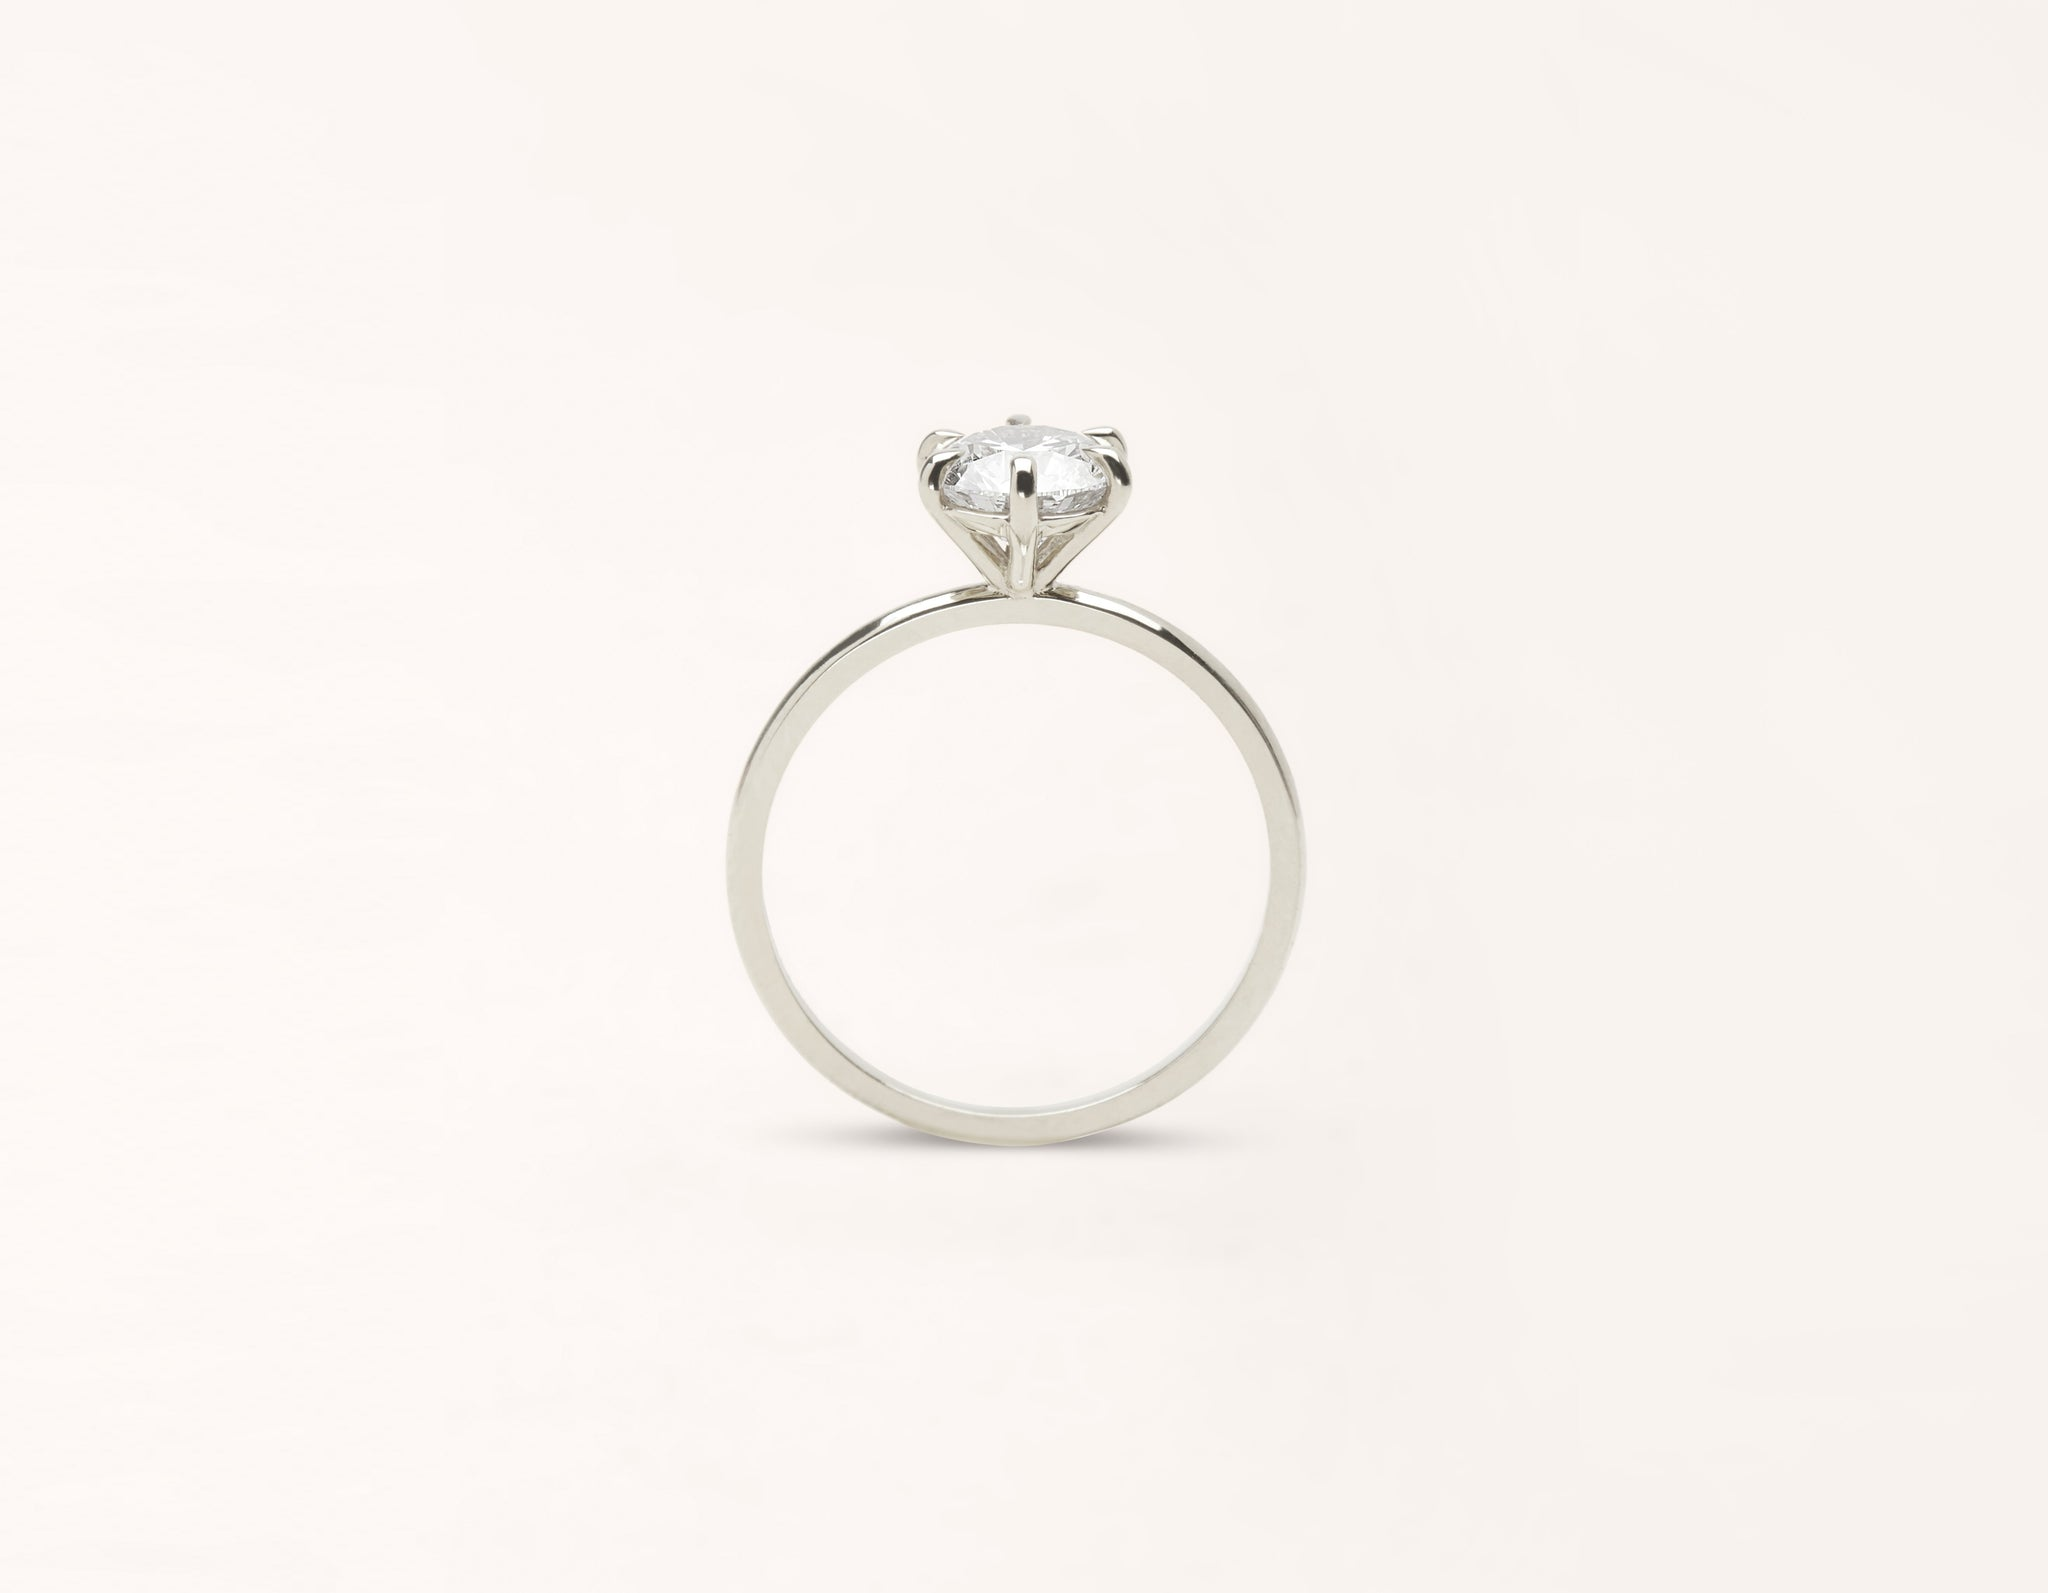 Vrai and Oro classic The Solitaire diamond engagement ring 18k solid white gold sustainable jewelry